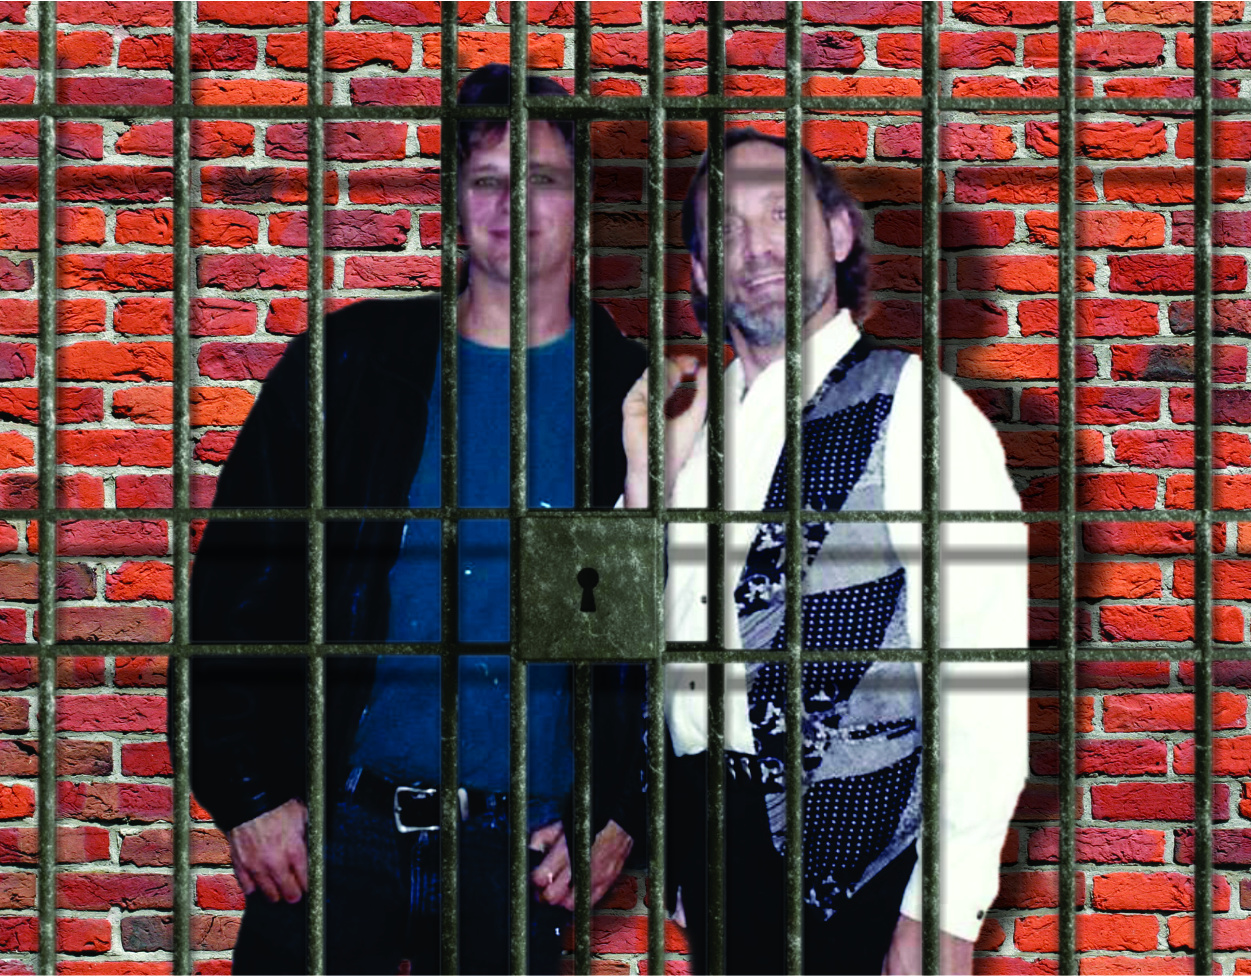 BOT Den and Jim jail flat